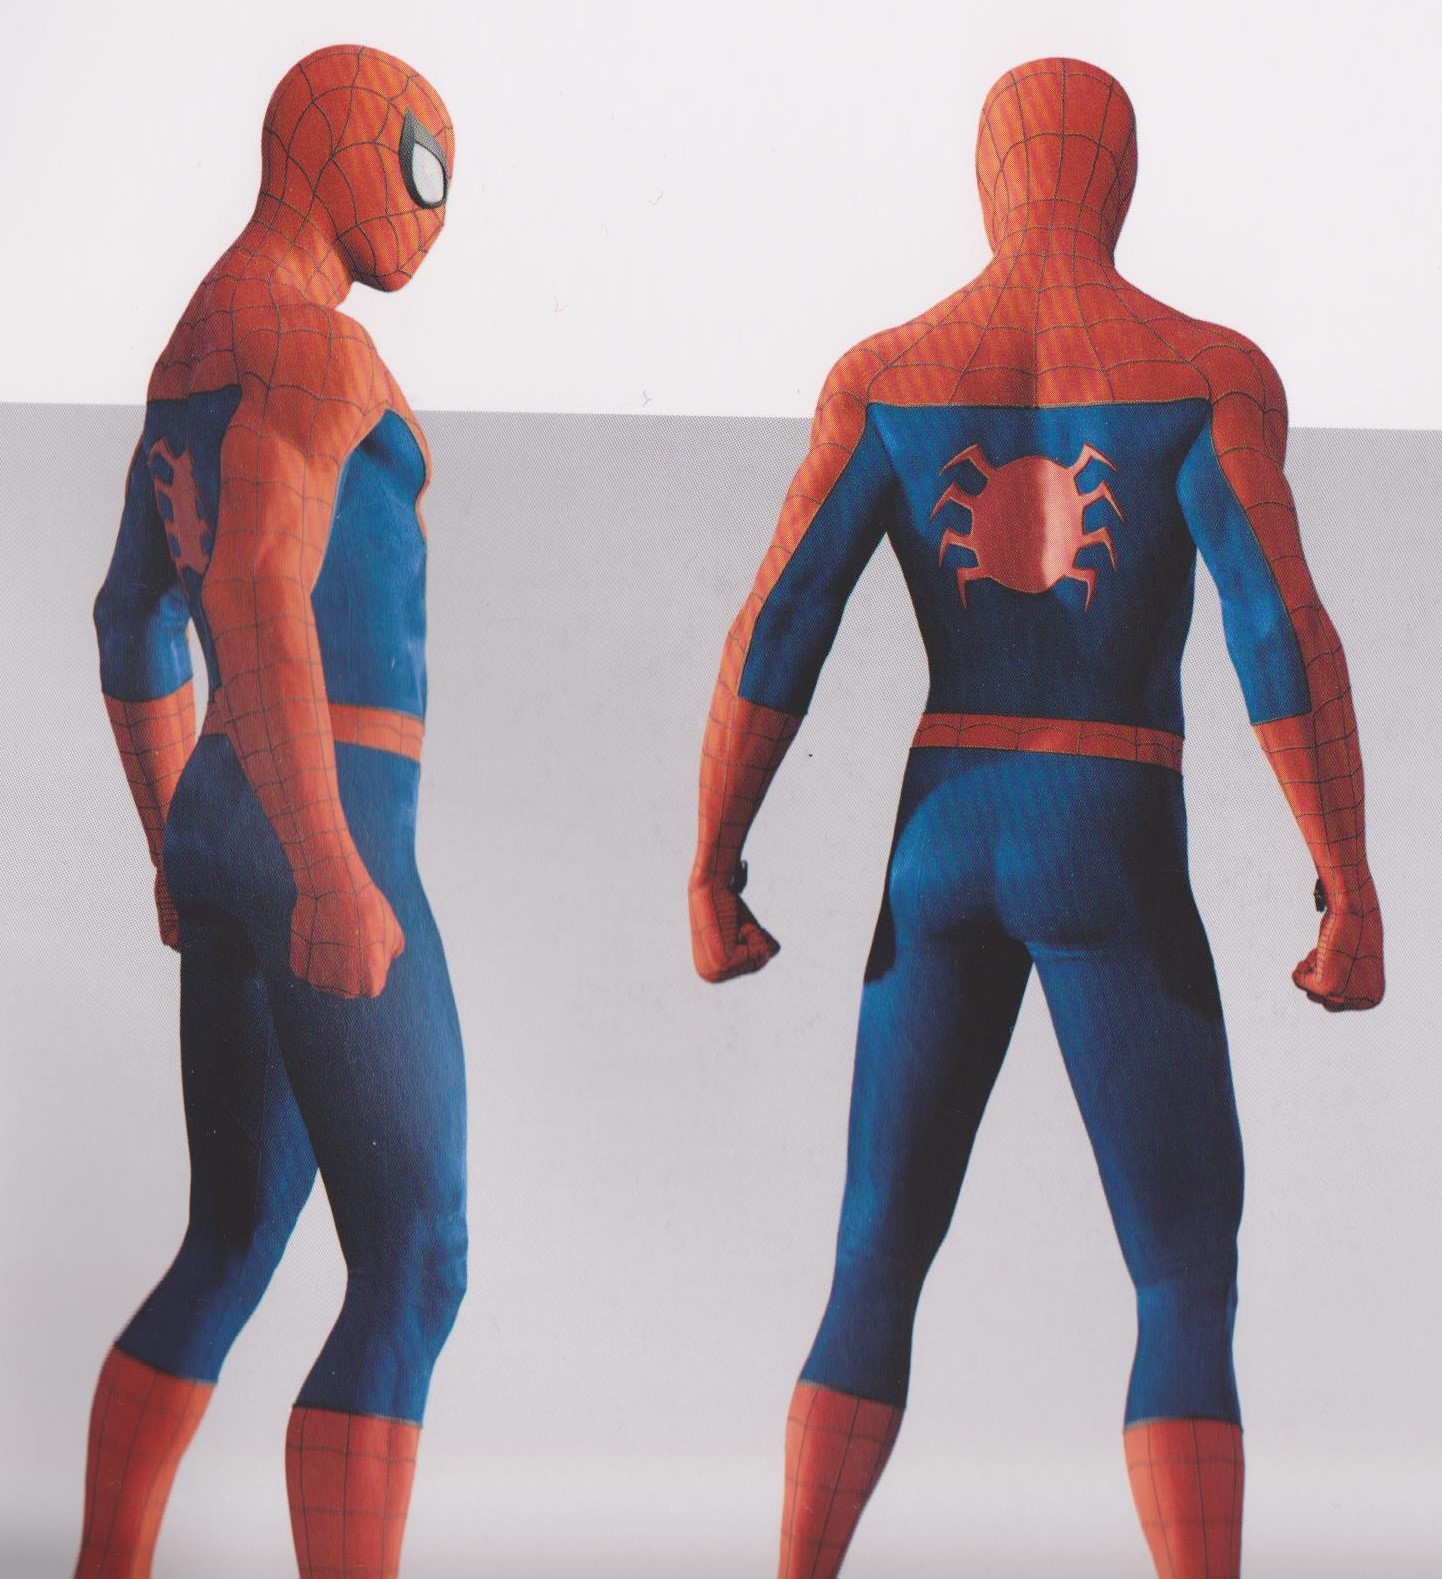 Spider Man Ps4 Concept Art Reveals Alternate Designs For The Wall